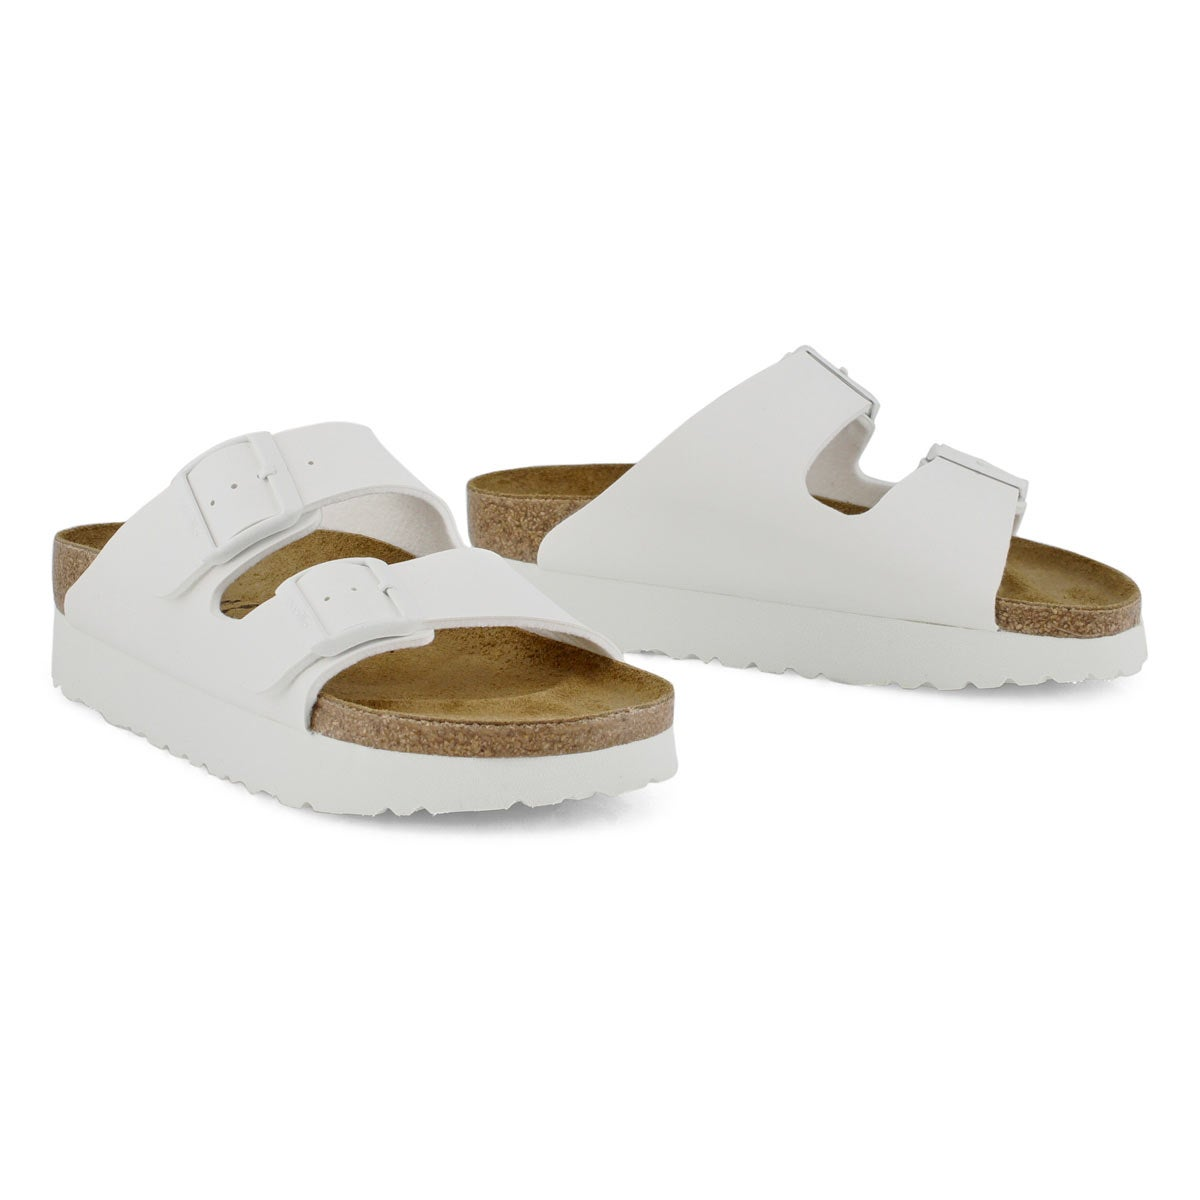 Lds Arizona white platform sandal-N